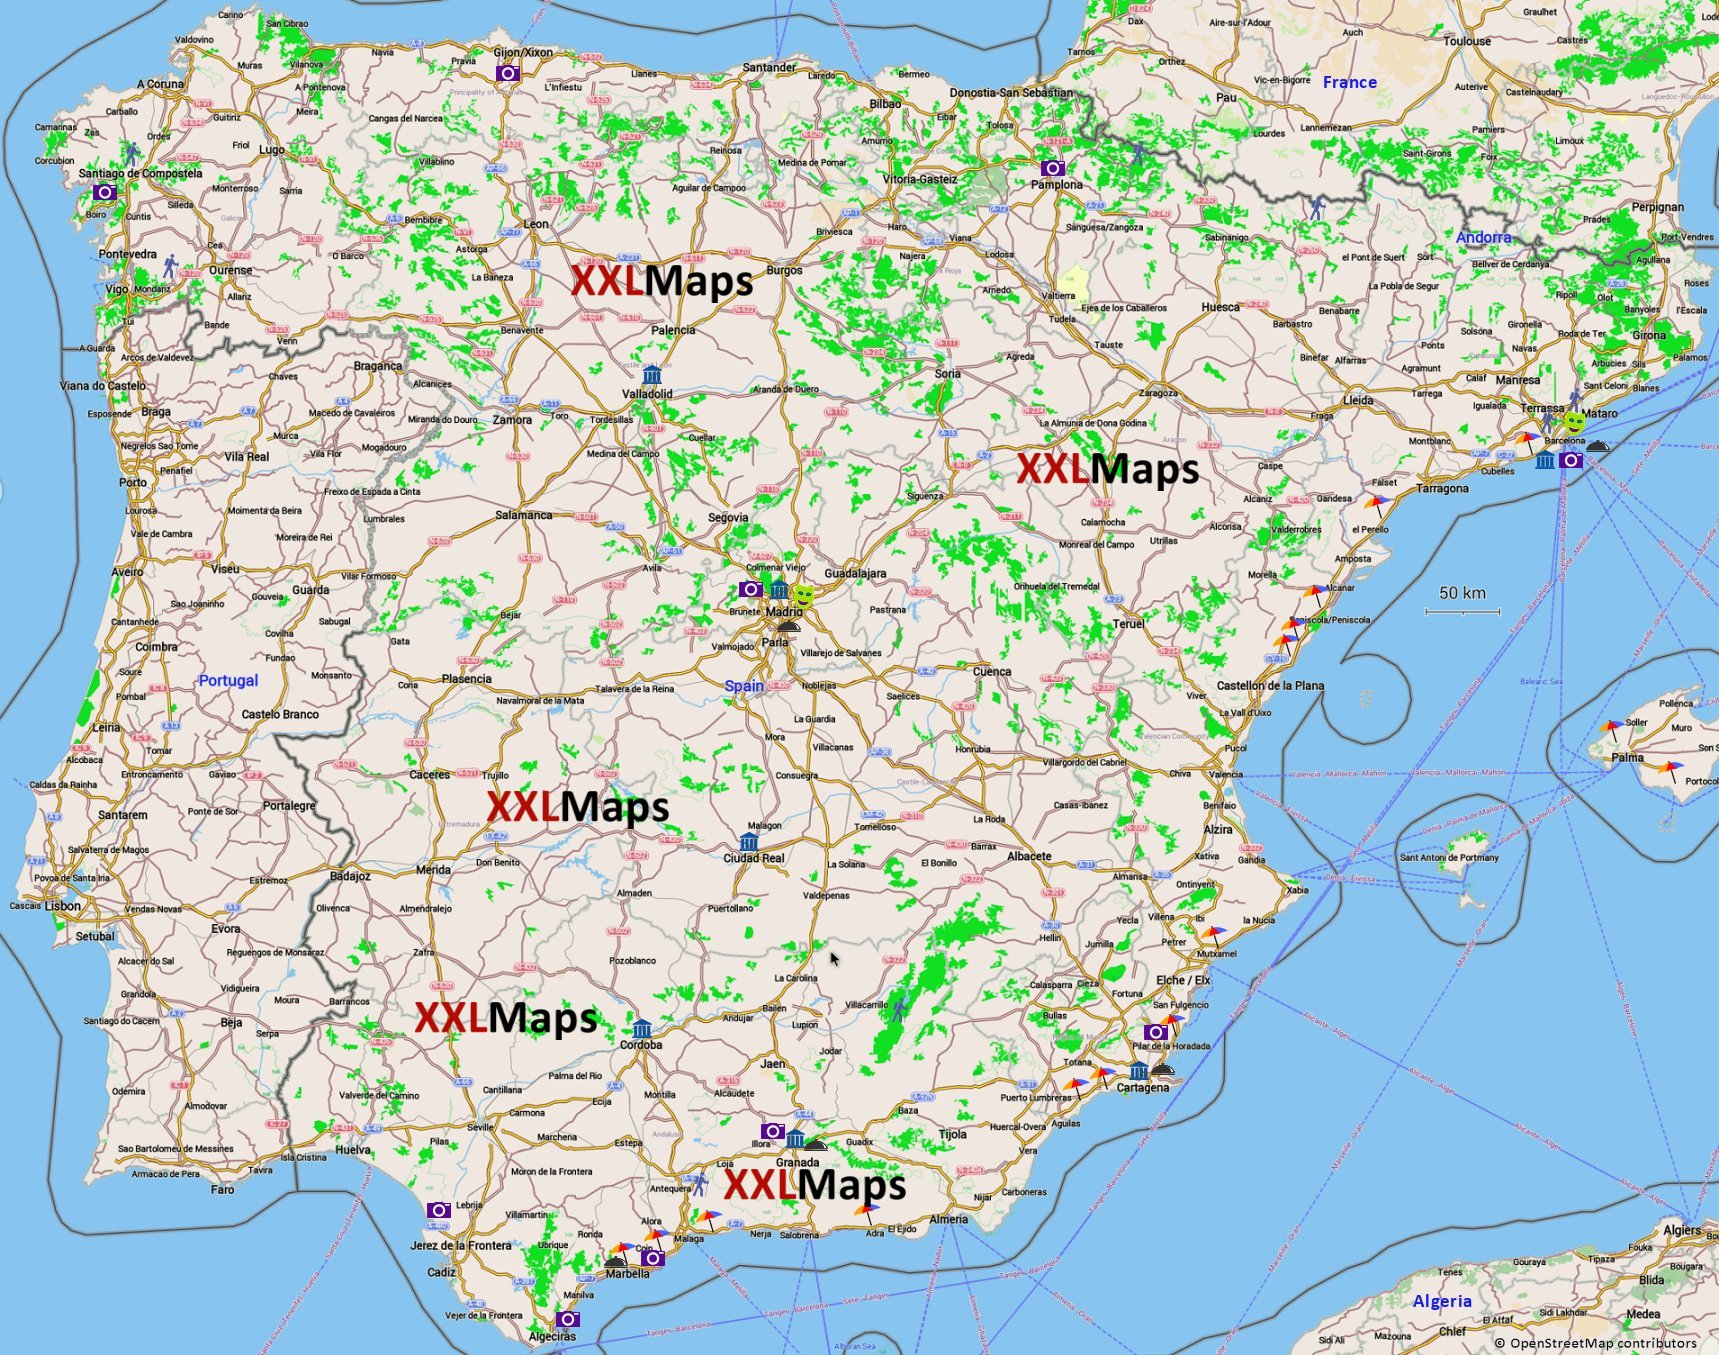 mapa espanha serra nevada Tourist map of Spain   free download for smartphones, tablets and  mapa espanha serra nevada